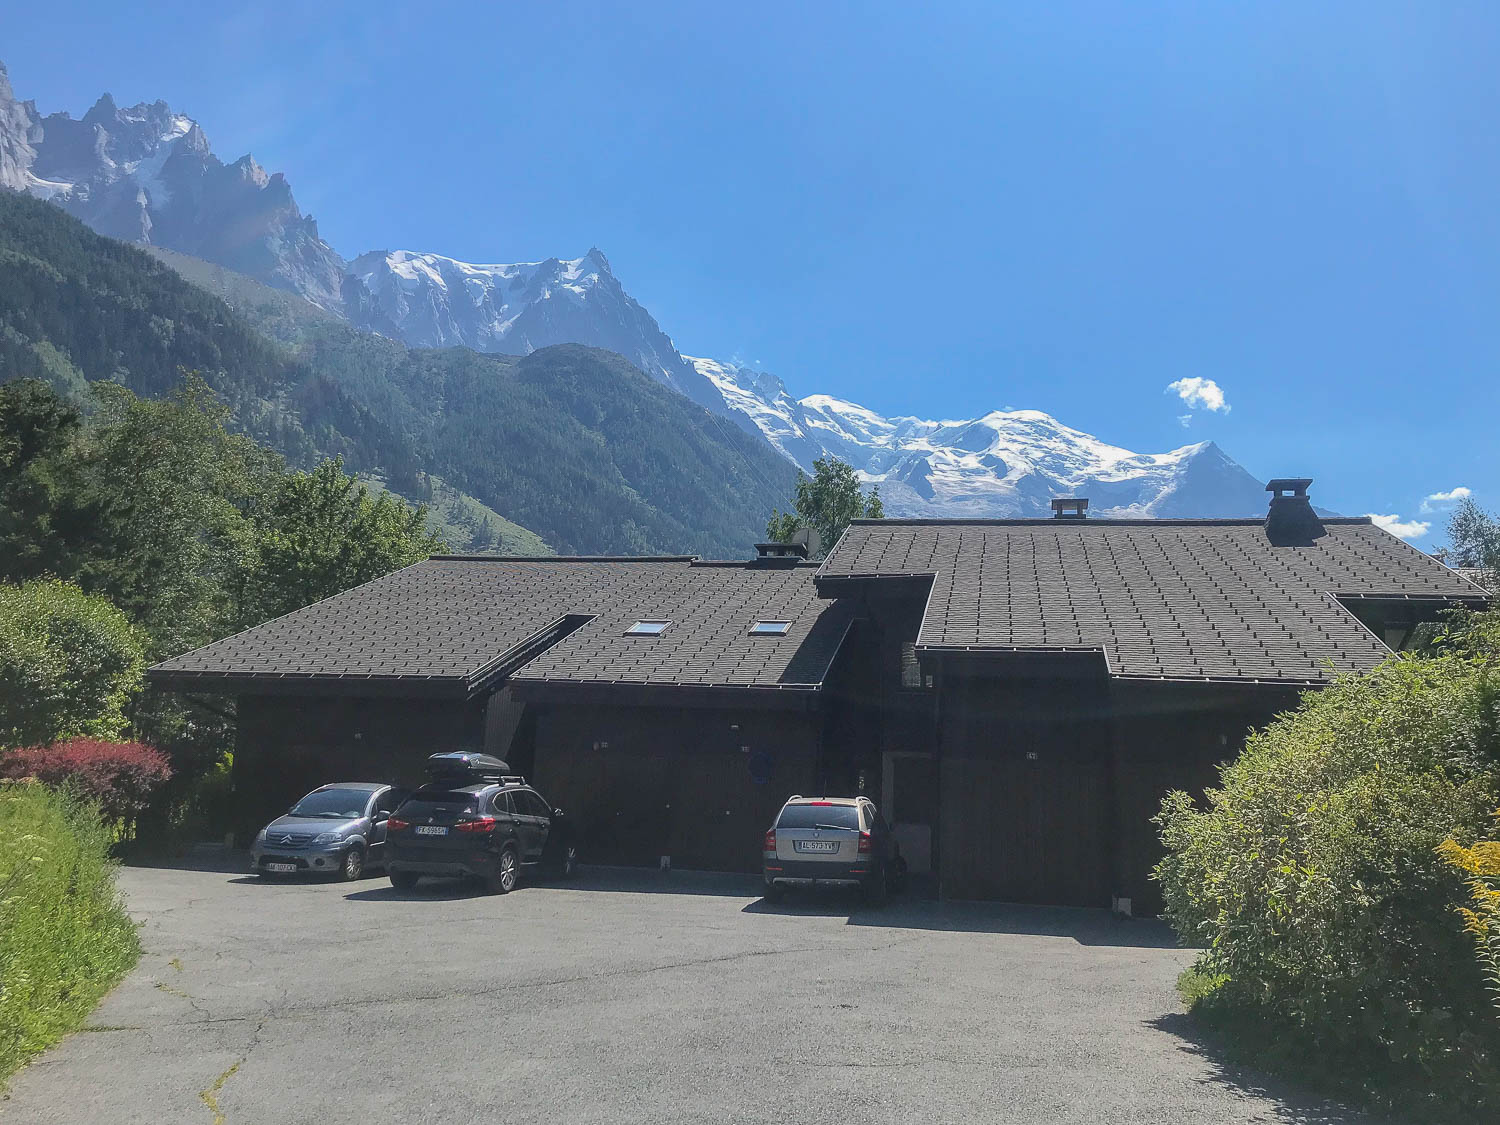 Apartment close to Chamonix centre, Champraz area